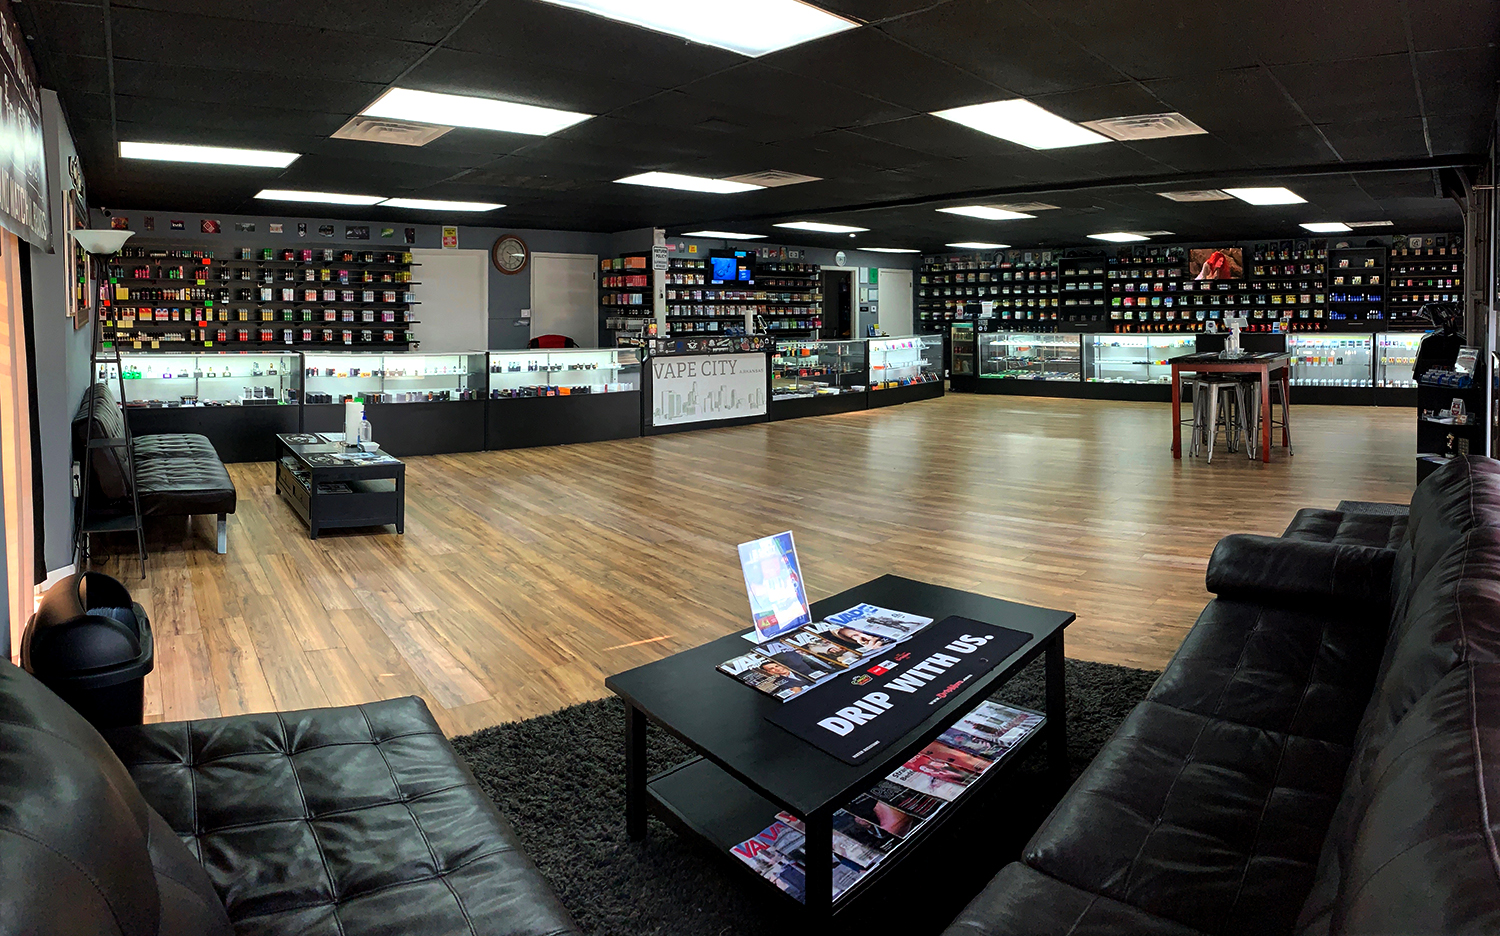 Vape City in Russellville - 105 East Parkway, Russellville, AR 72801(479) 498-8228Store Hours: Mon - Sat 9am - 9pmSunday - 11am - 7pm